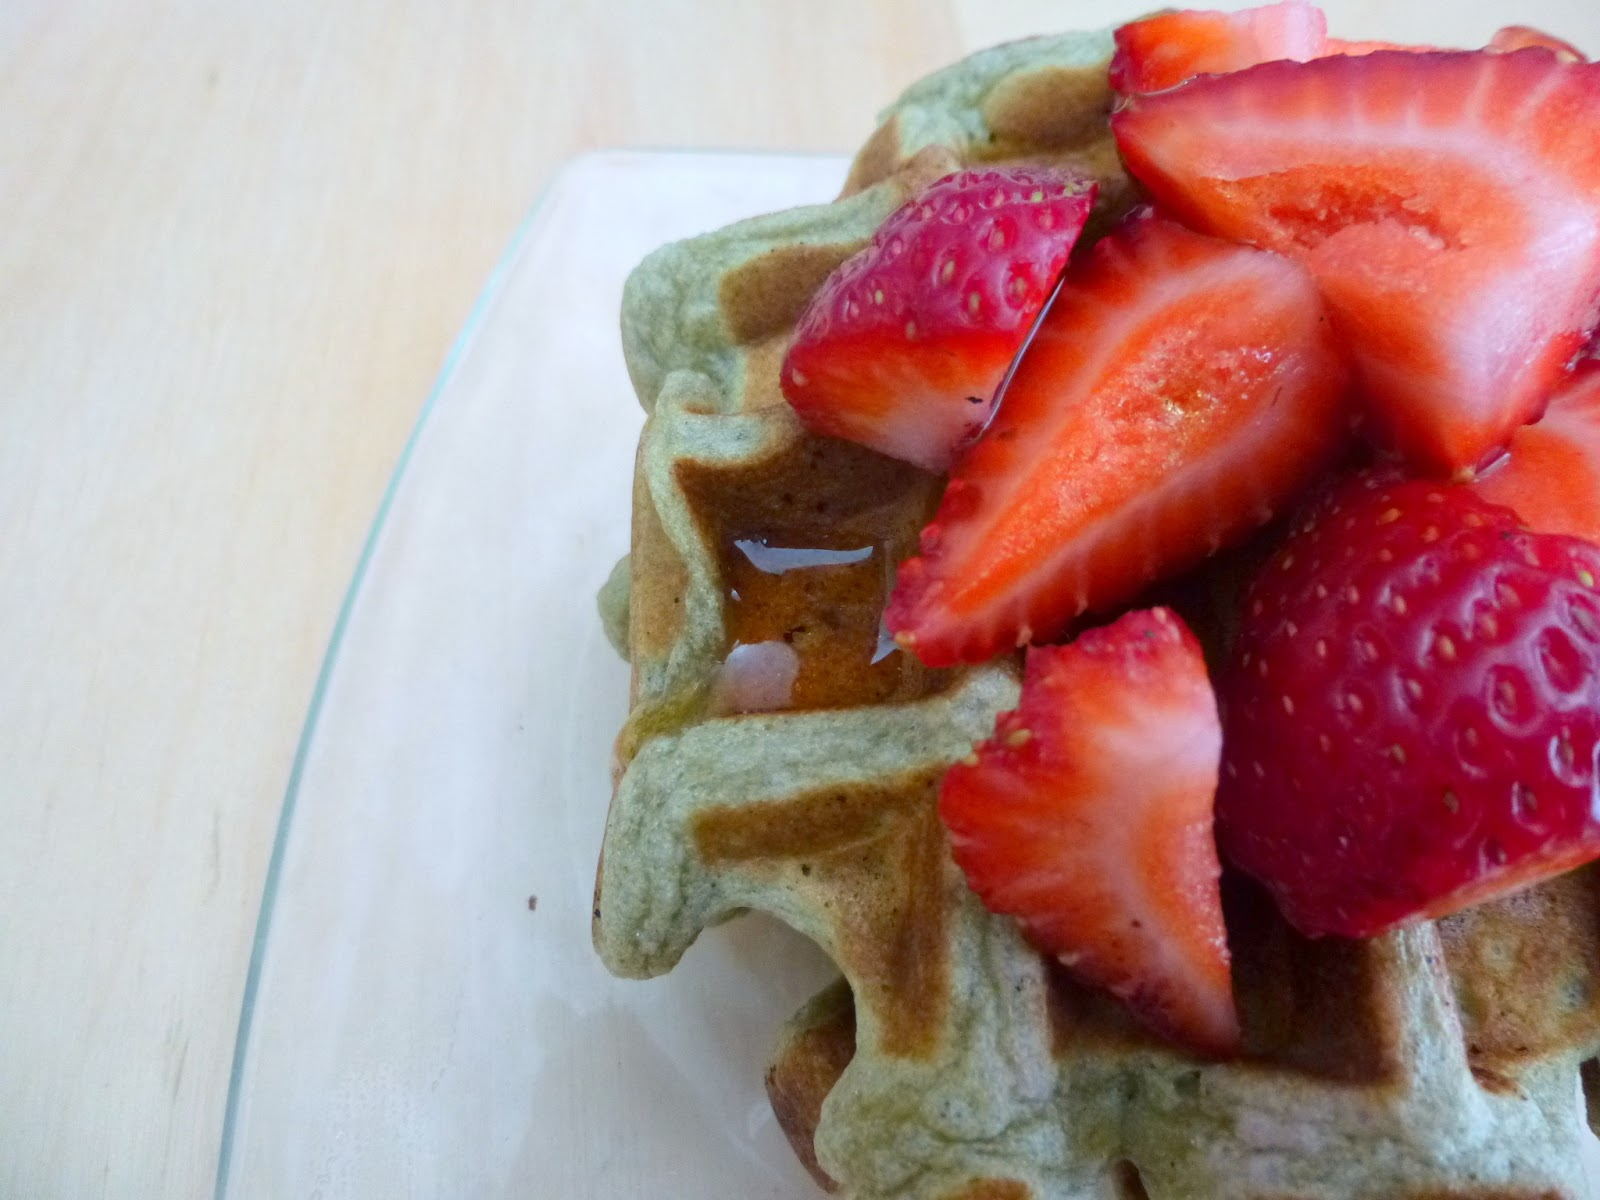 if you want to insert matcha into even more areas of your life, these matcha waffles (topped with maple syrup and strawberries) are perfect.